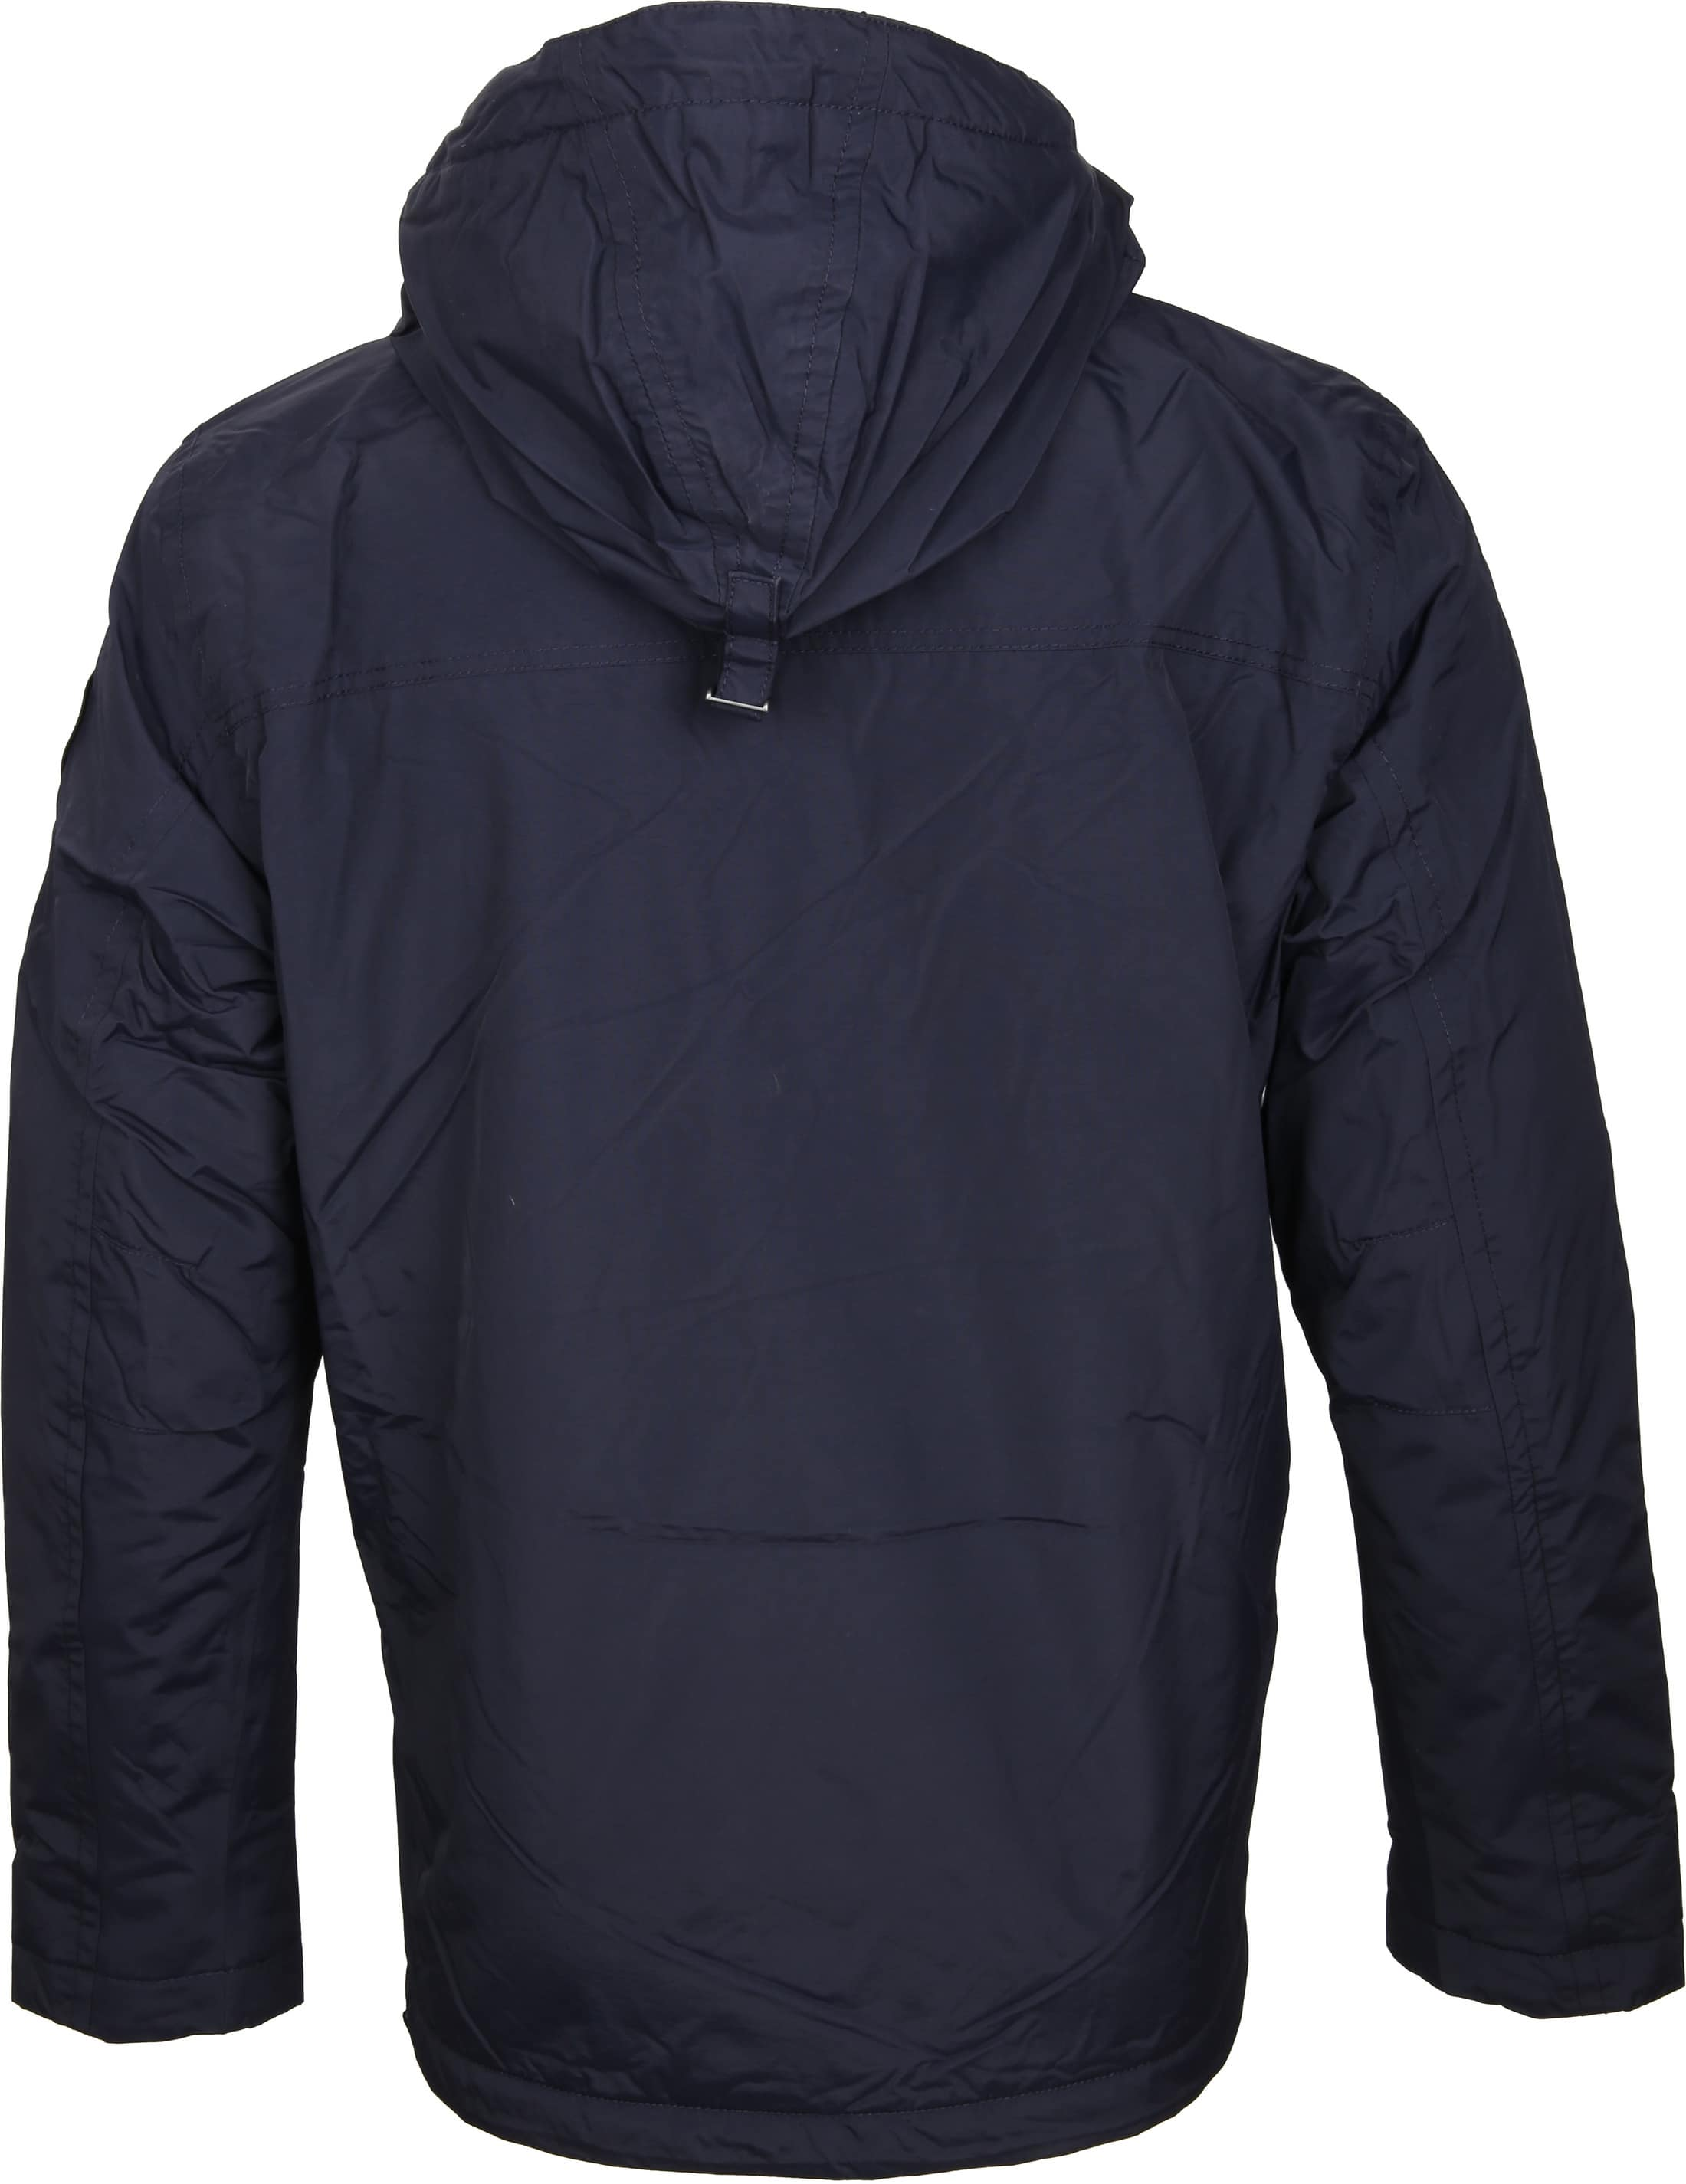 Napapijri Anorak Rainforest Pocket Navy foto 6